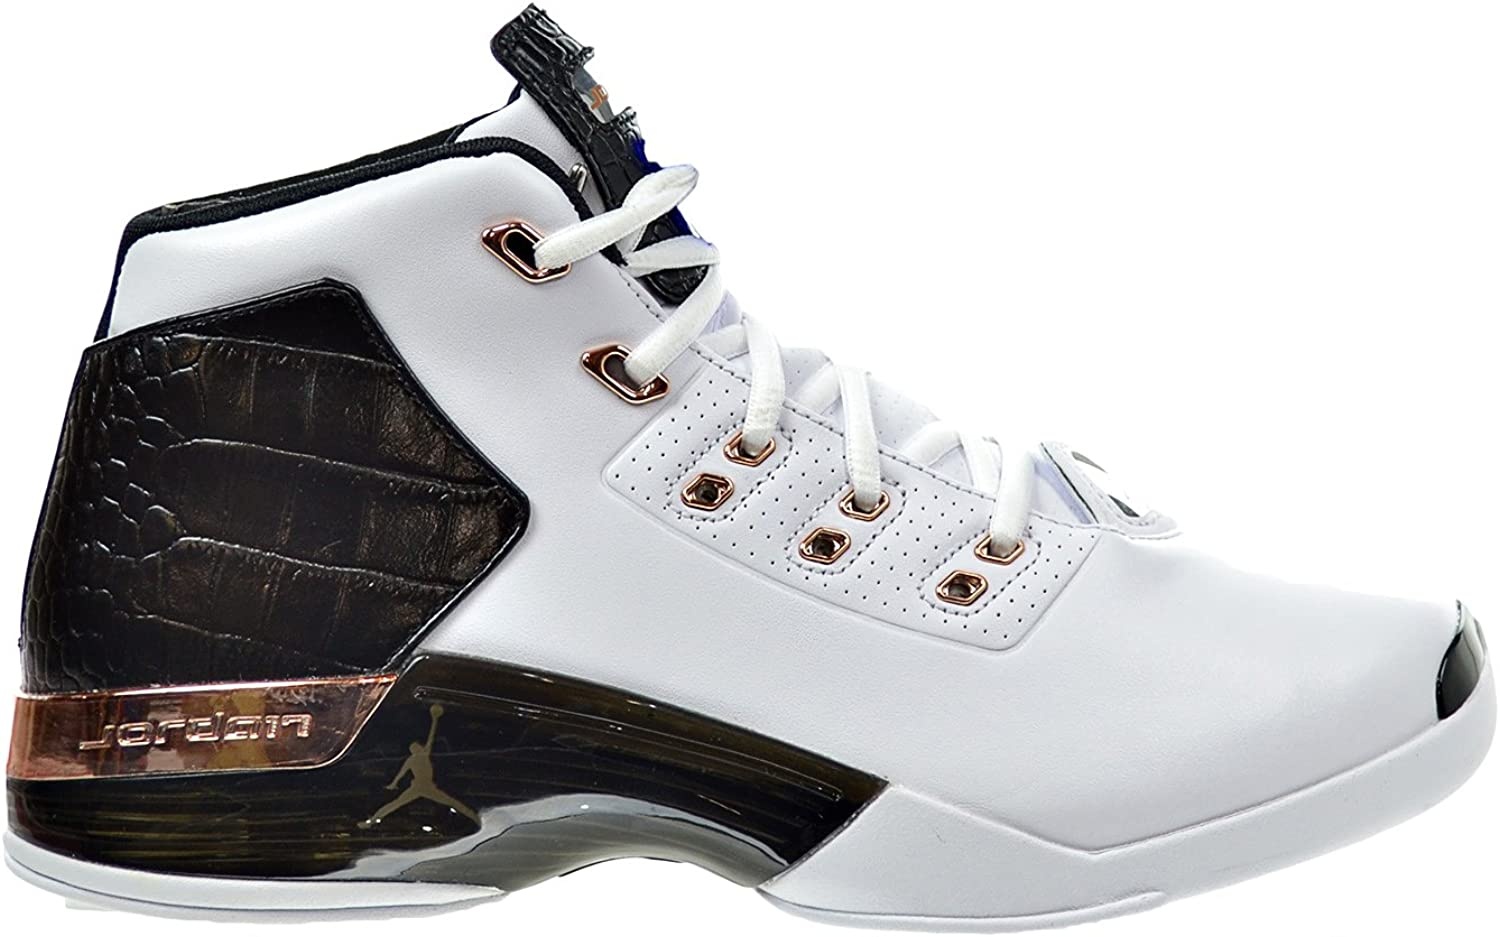 Retro Mens Shoes White//Metallic Copper//Black 832816-122 Jordan Air 17